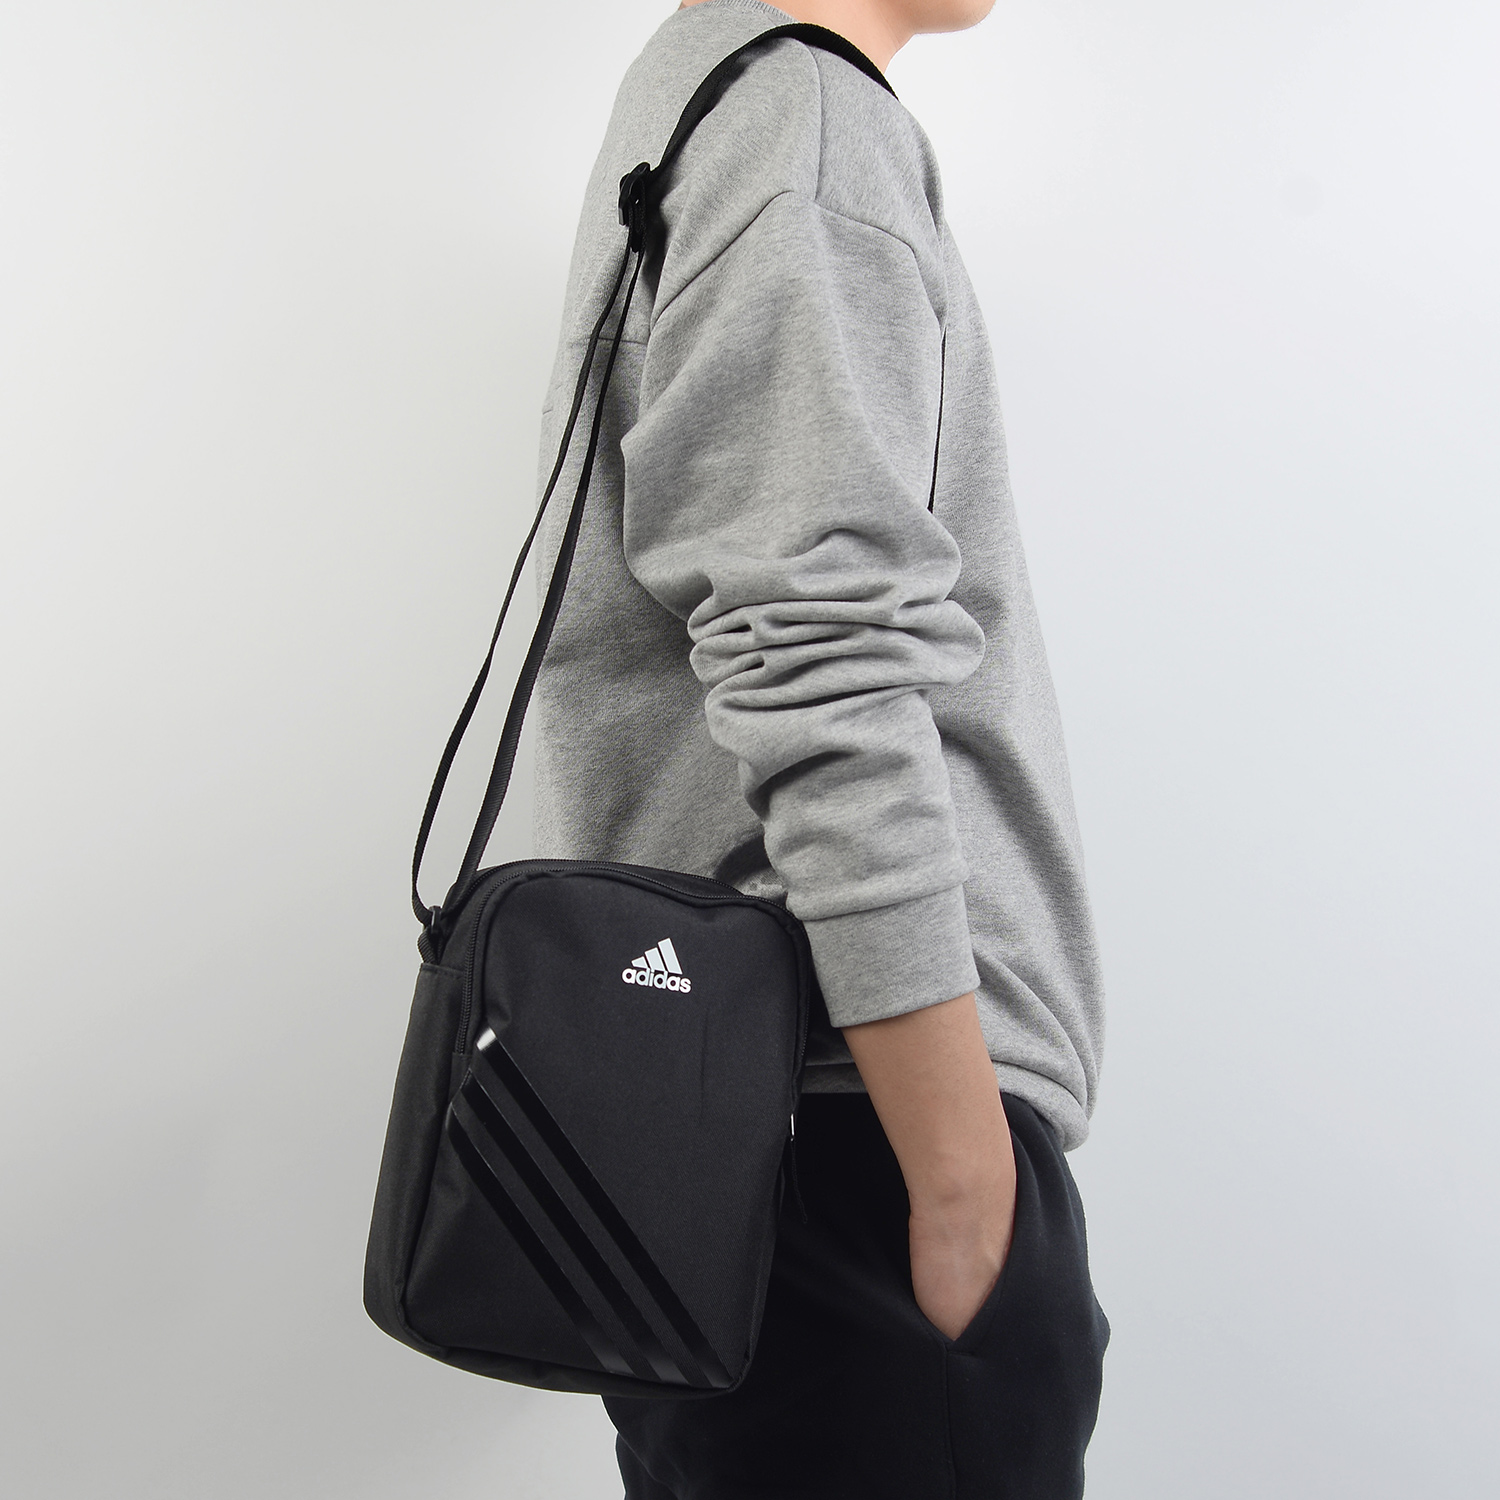 c386989a2237 adidas small shoulder bag on sale   OFF66% Discounts